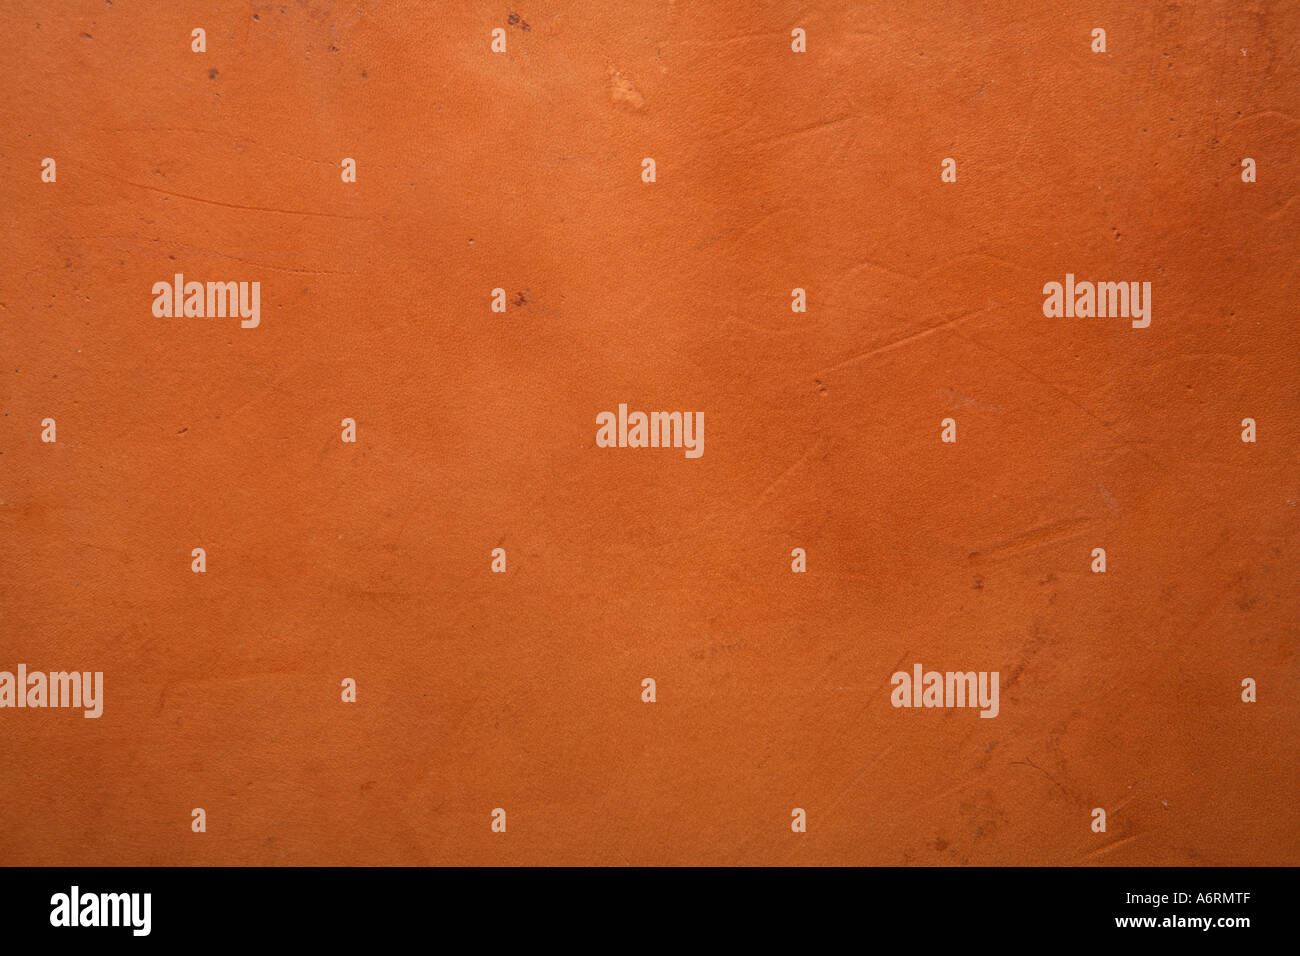 Tanned Leather Background - Stock Image